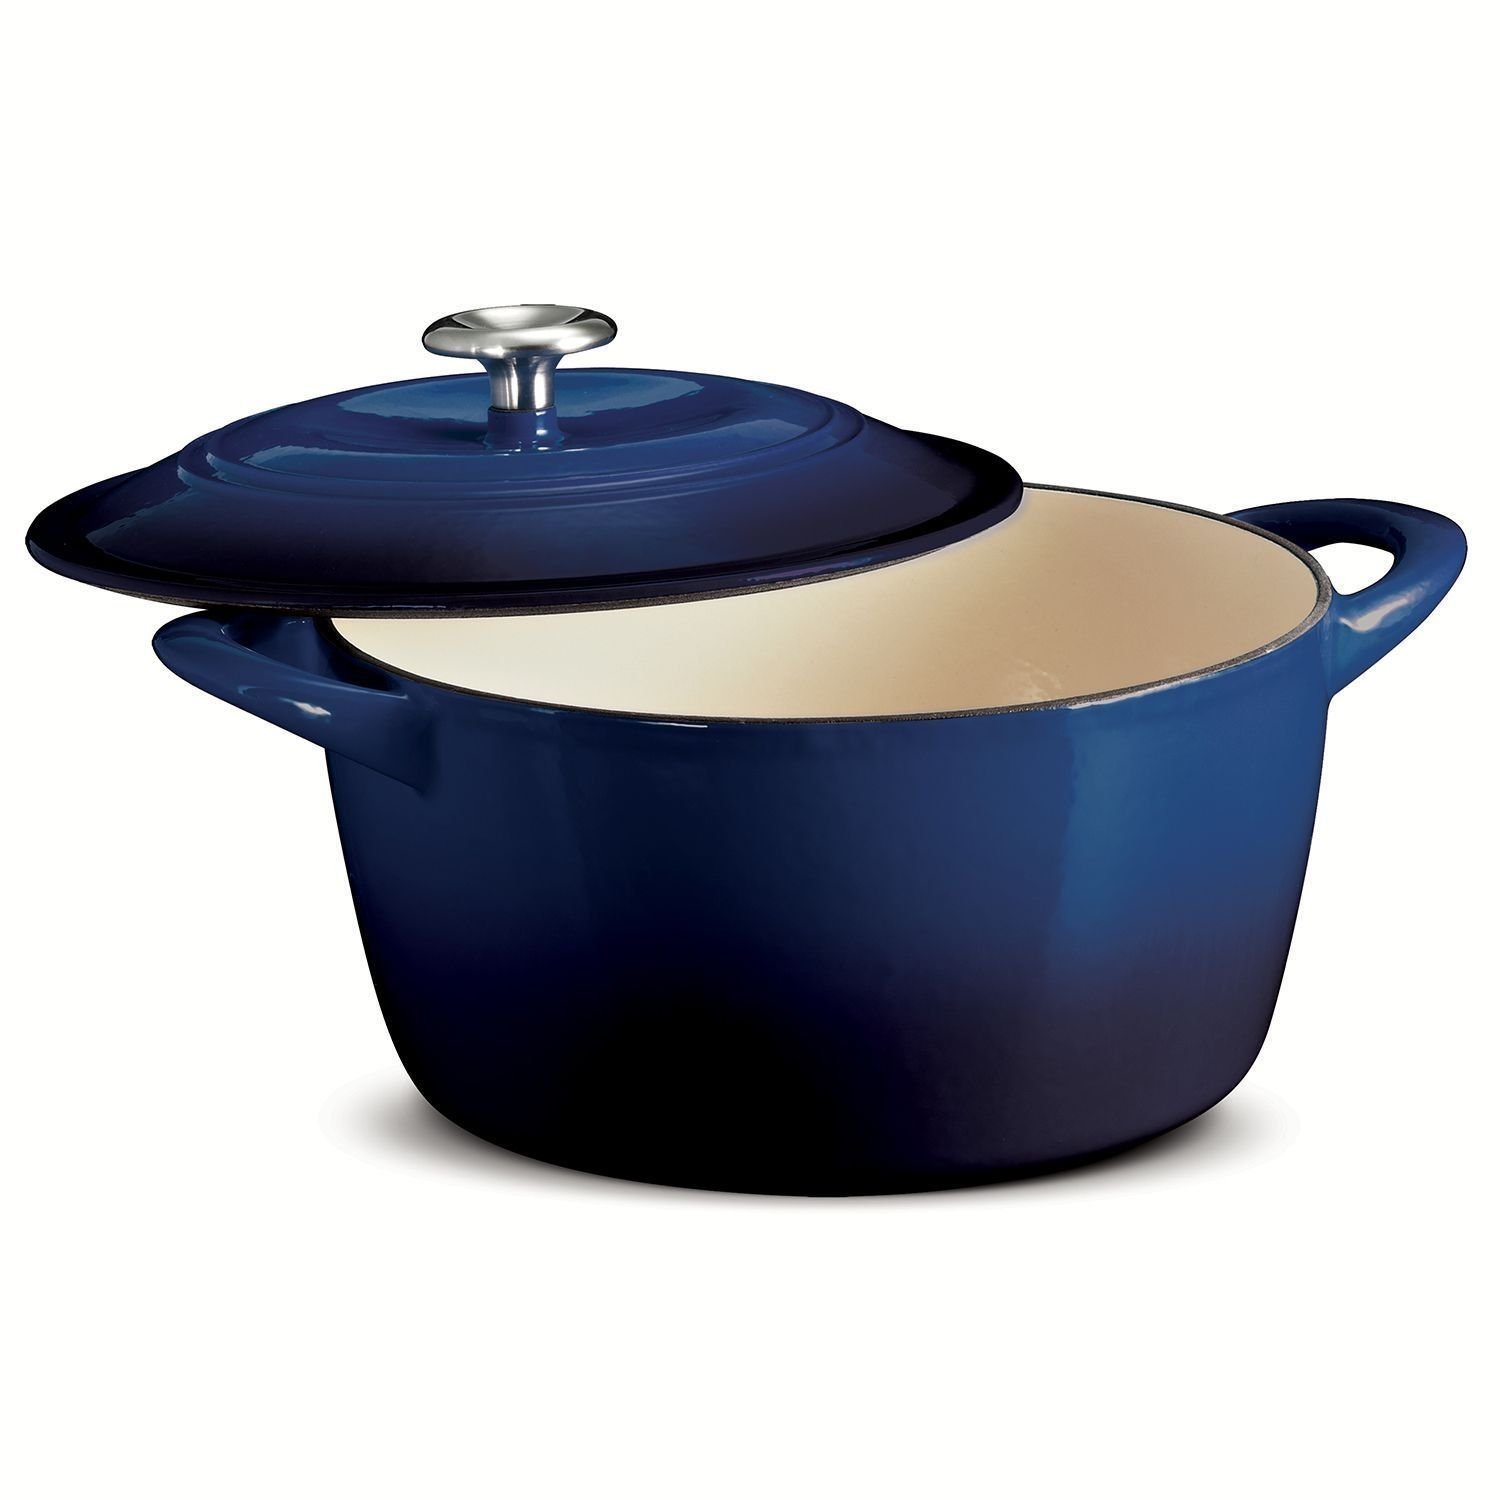 TRAMONTINA 6.5 Qt ROUND Dutch Oven Cobalt Blue Enameled Cast Iron